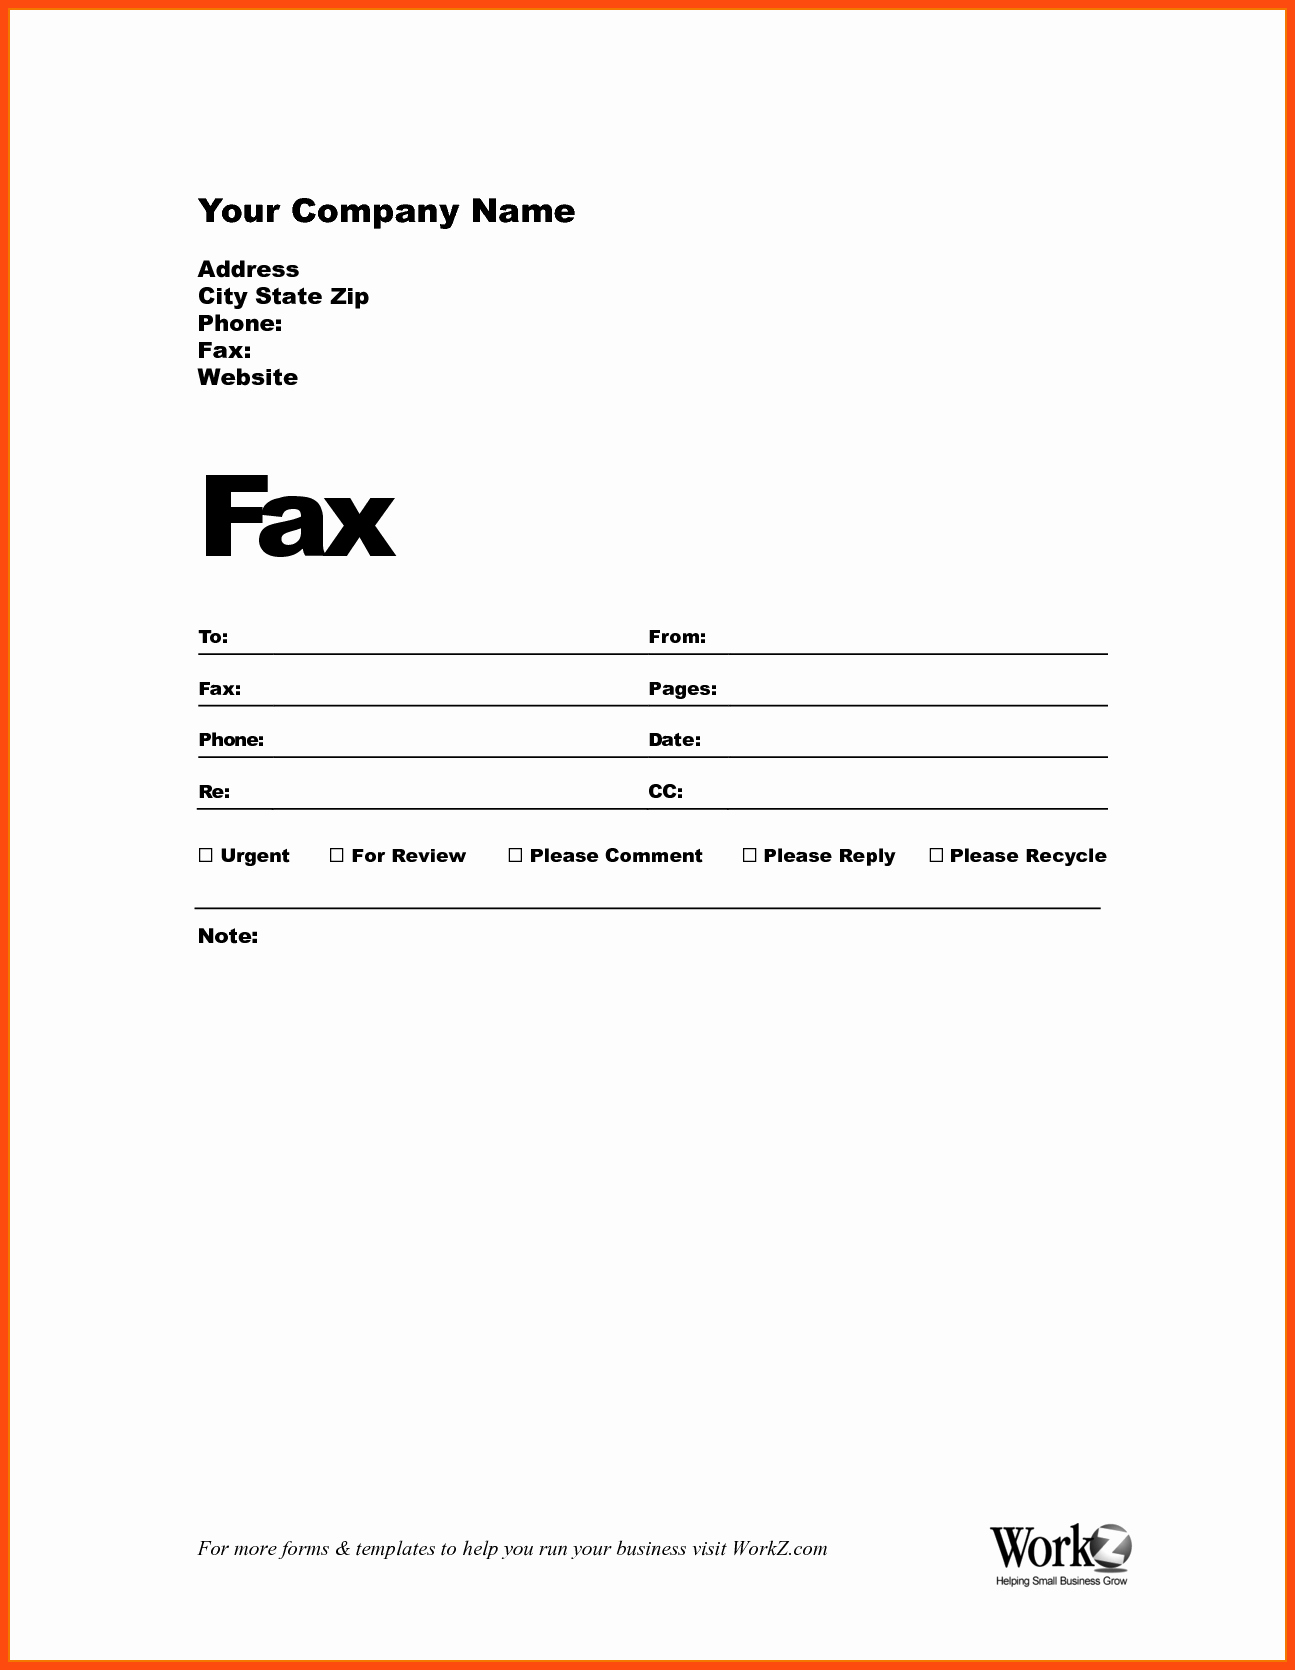 Cover Page for A Fax Lovely How to Fill Out A Fax Cover Sheet